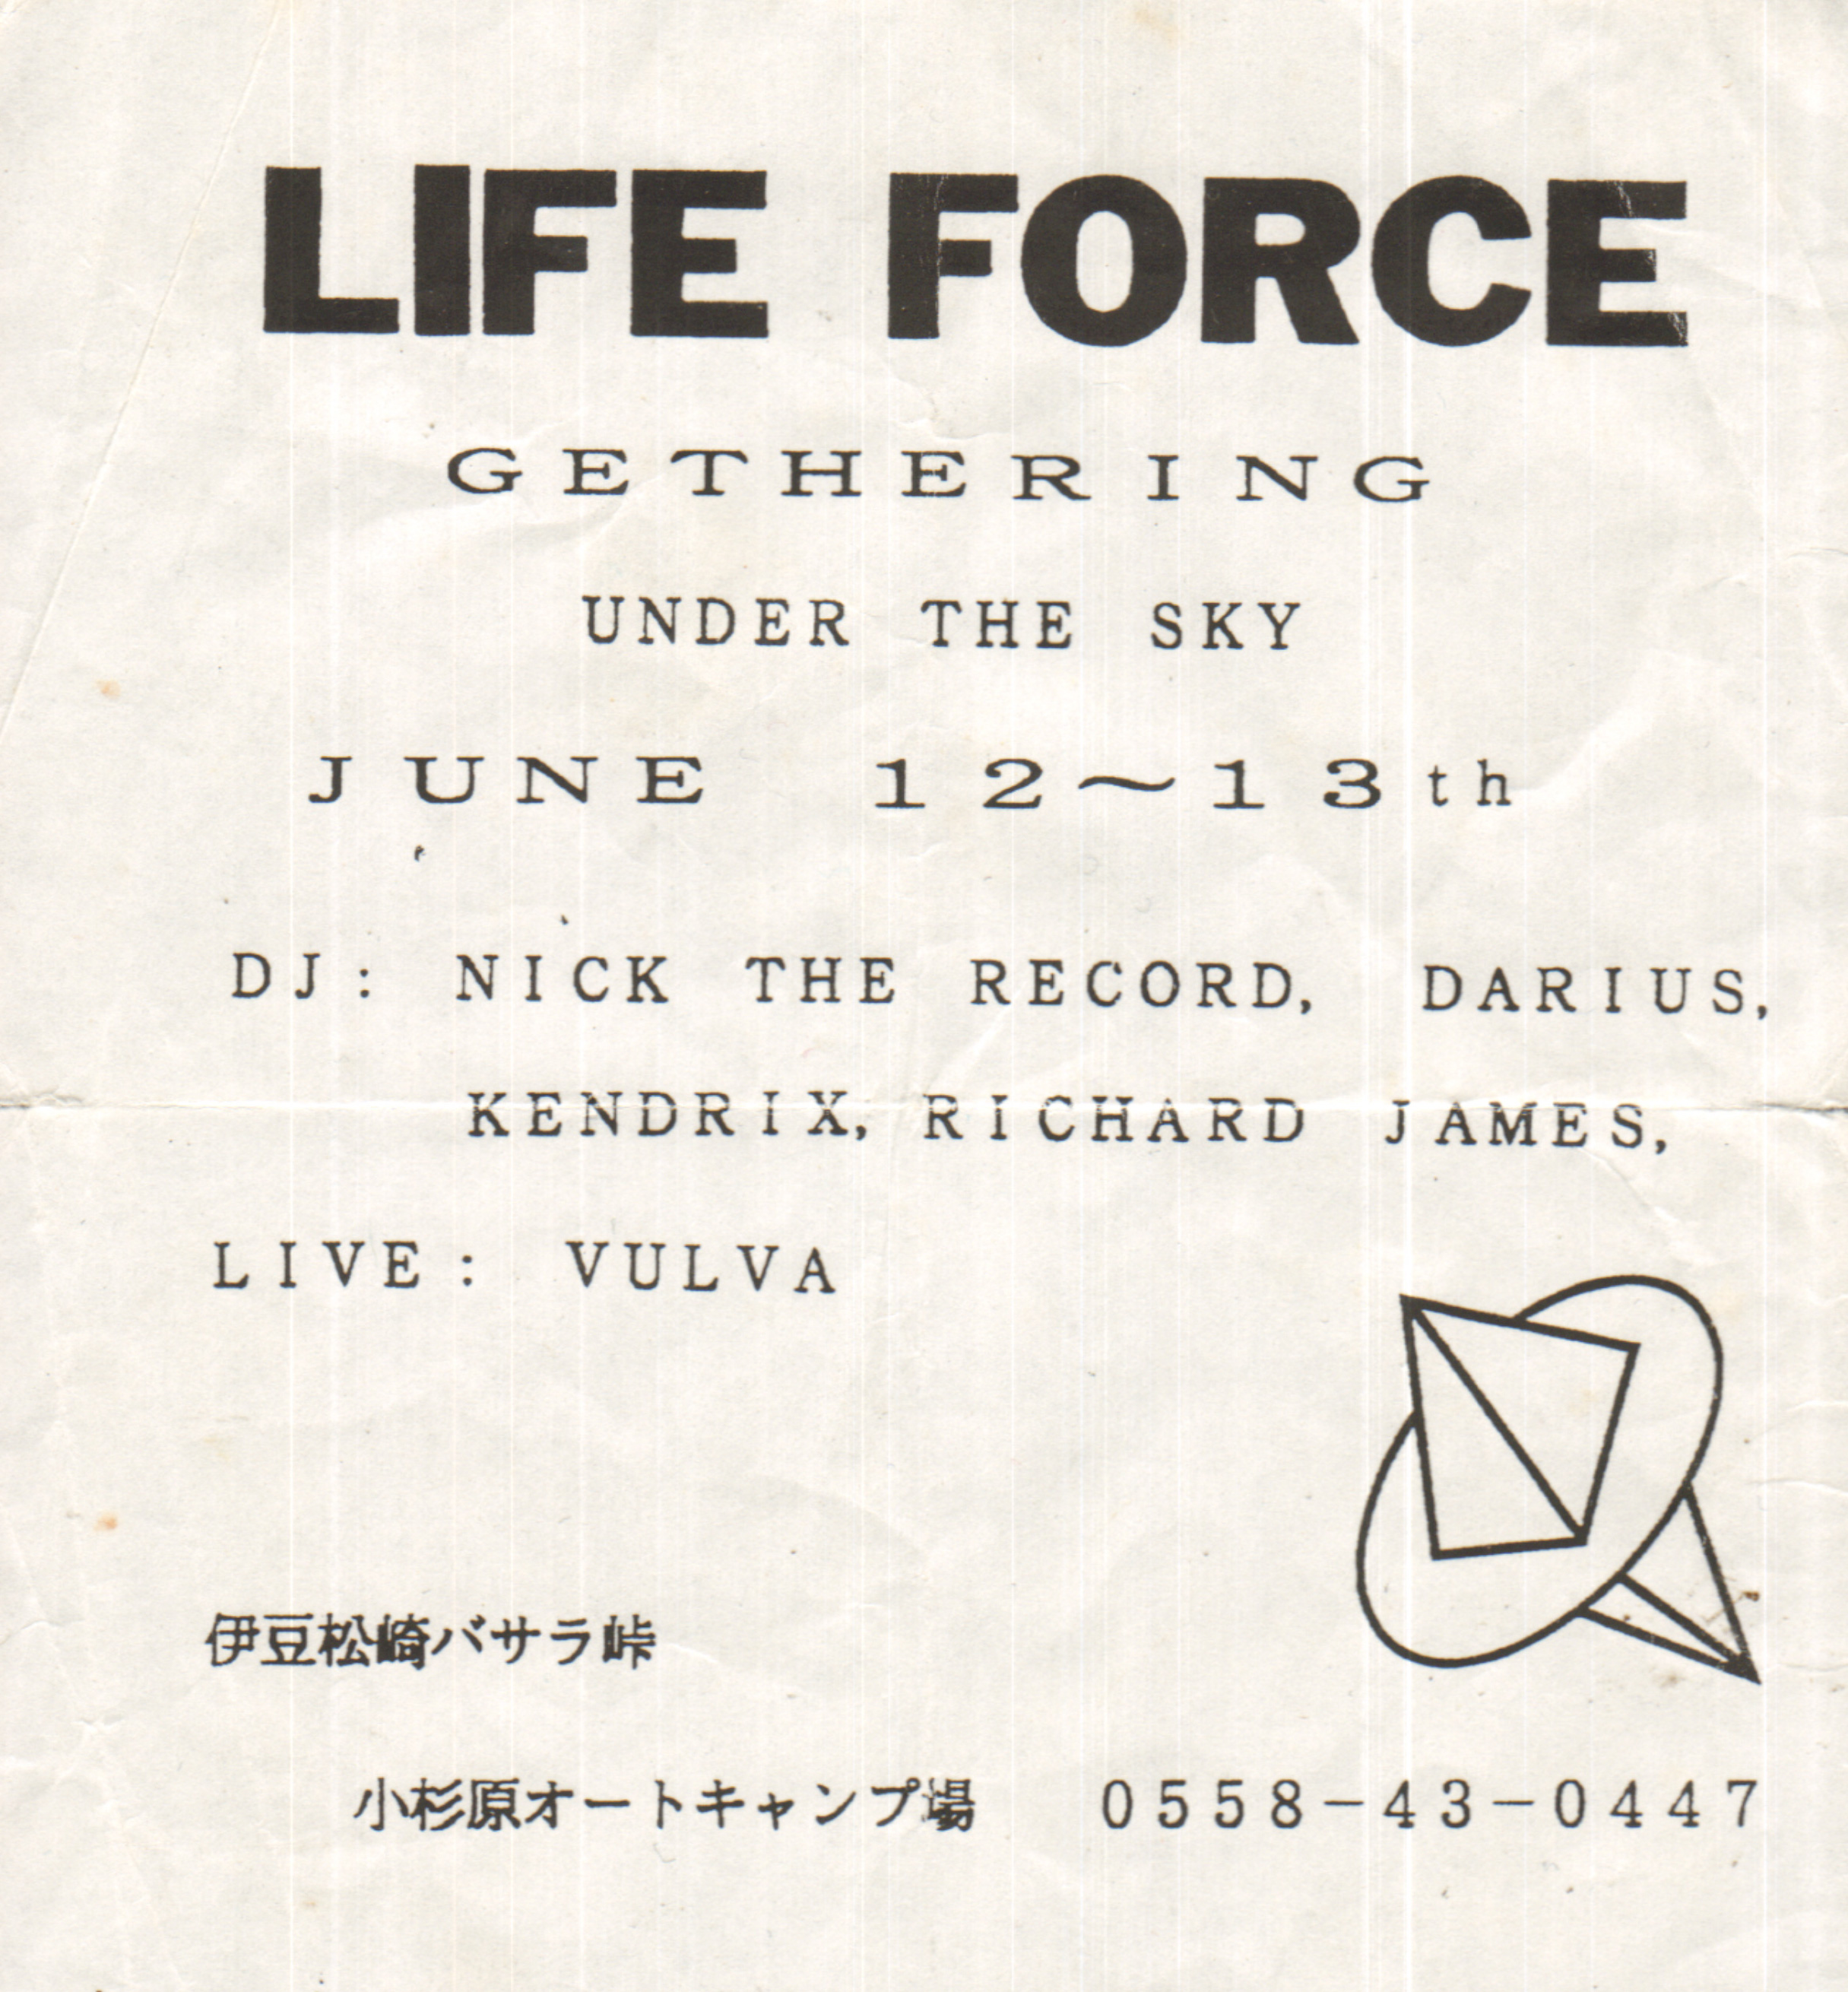 Nick The Record, Lifeforce, Japan, Story, Massa, Clubs, Japanese, Music